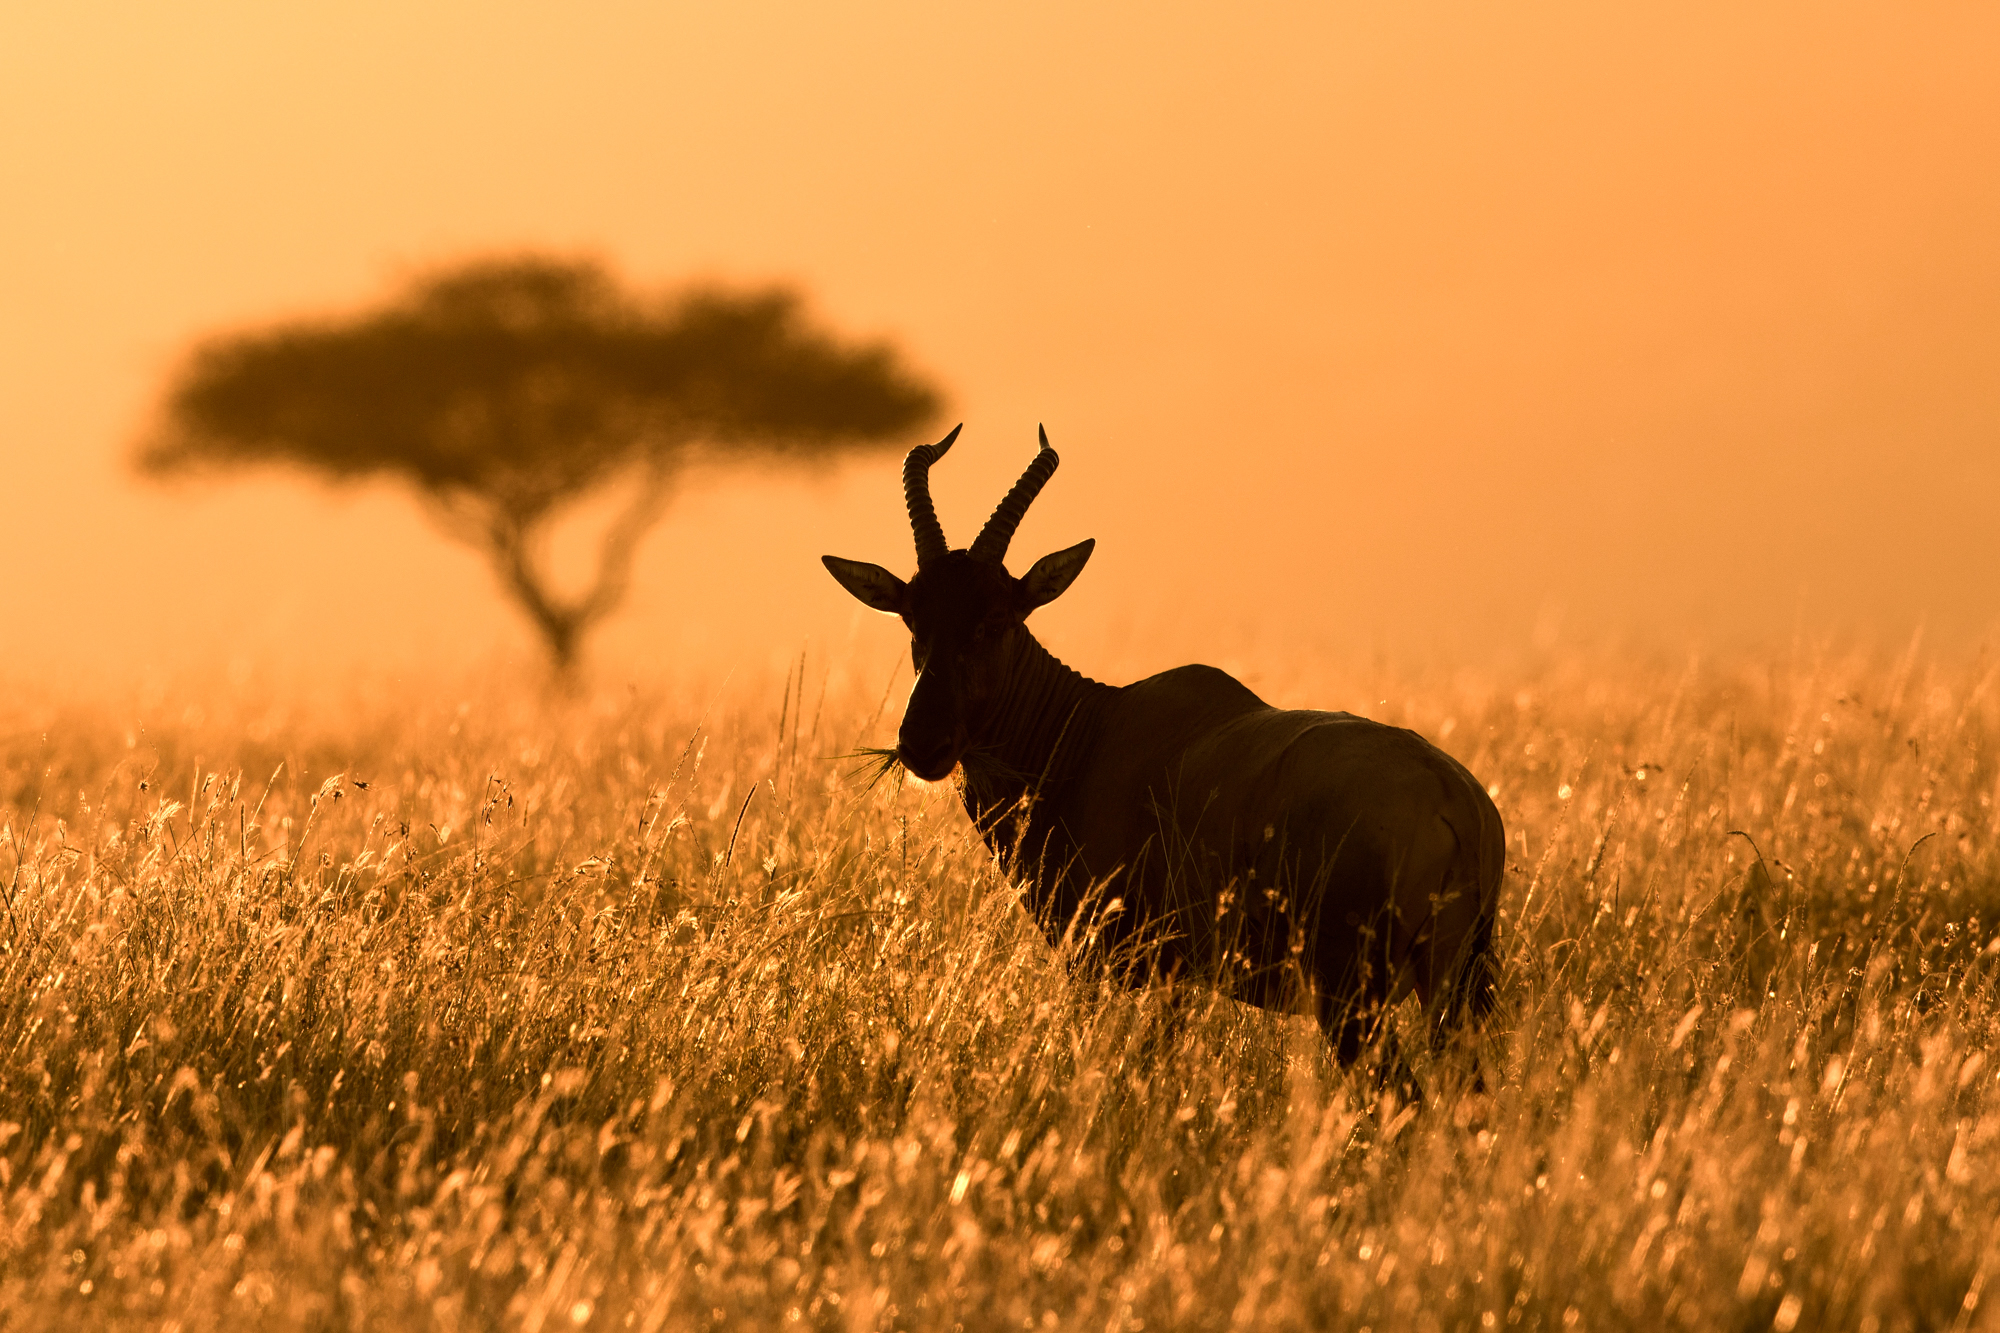 A topi grazing in the grass during the last light of the day.